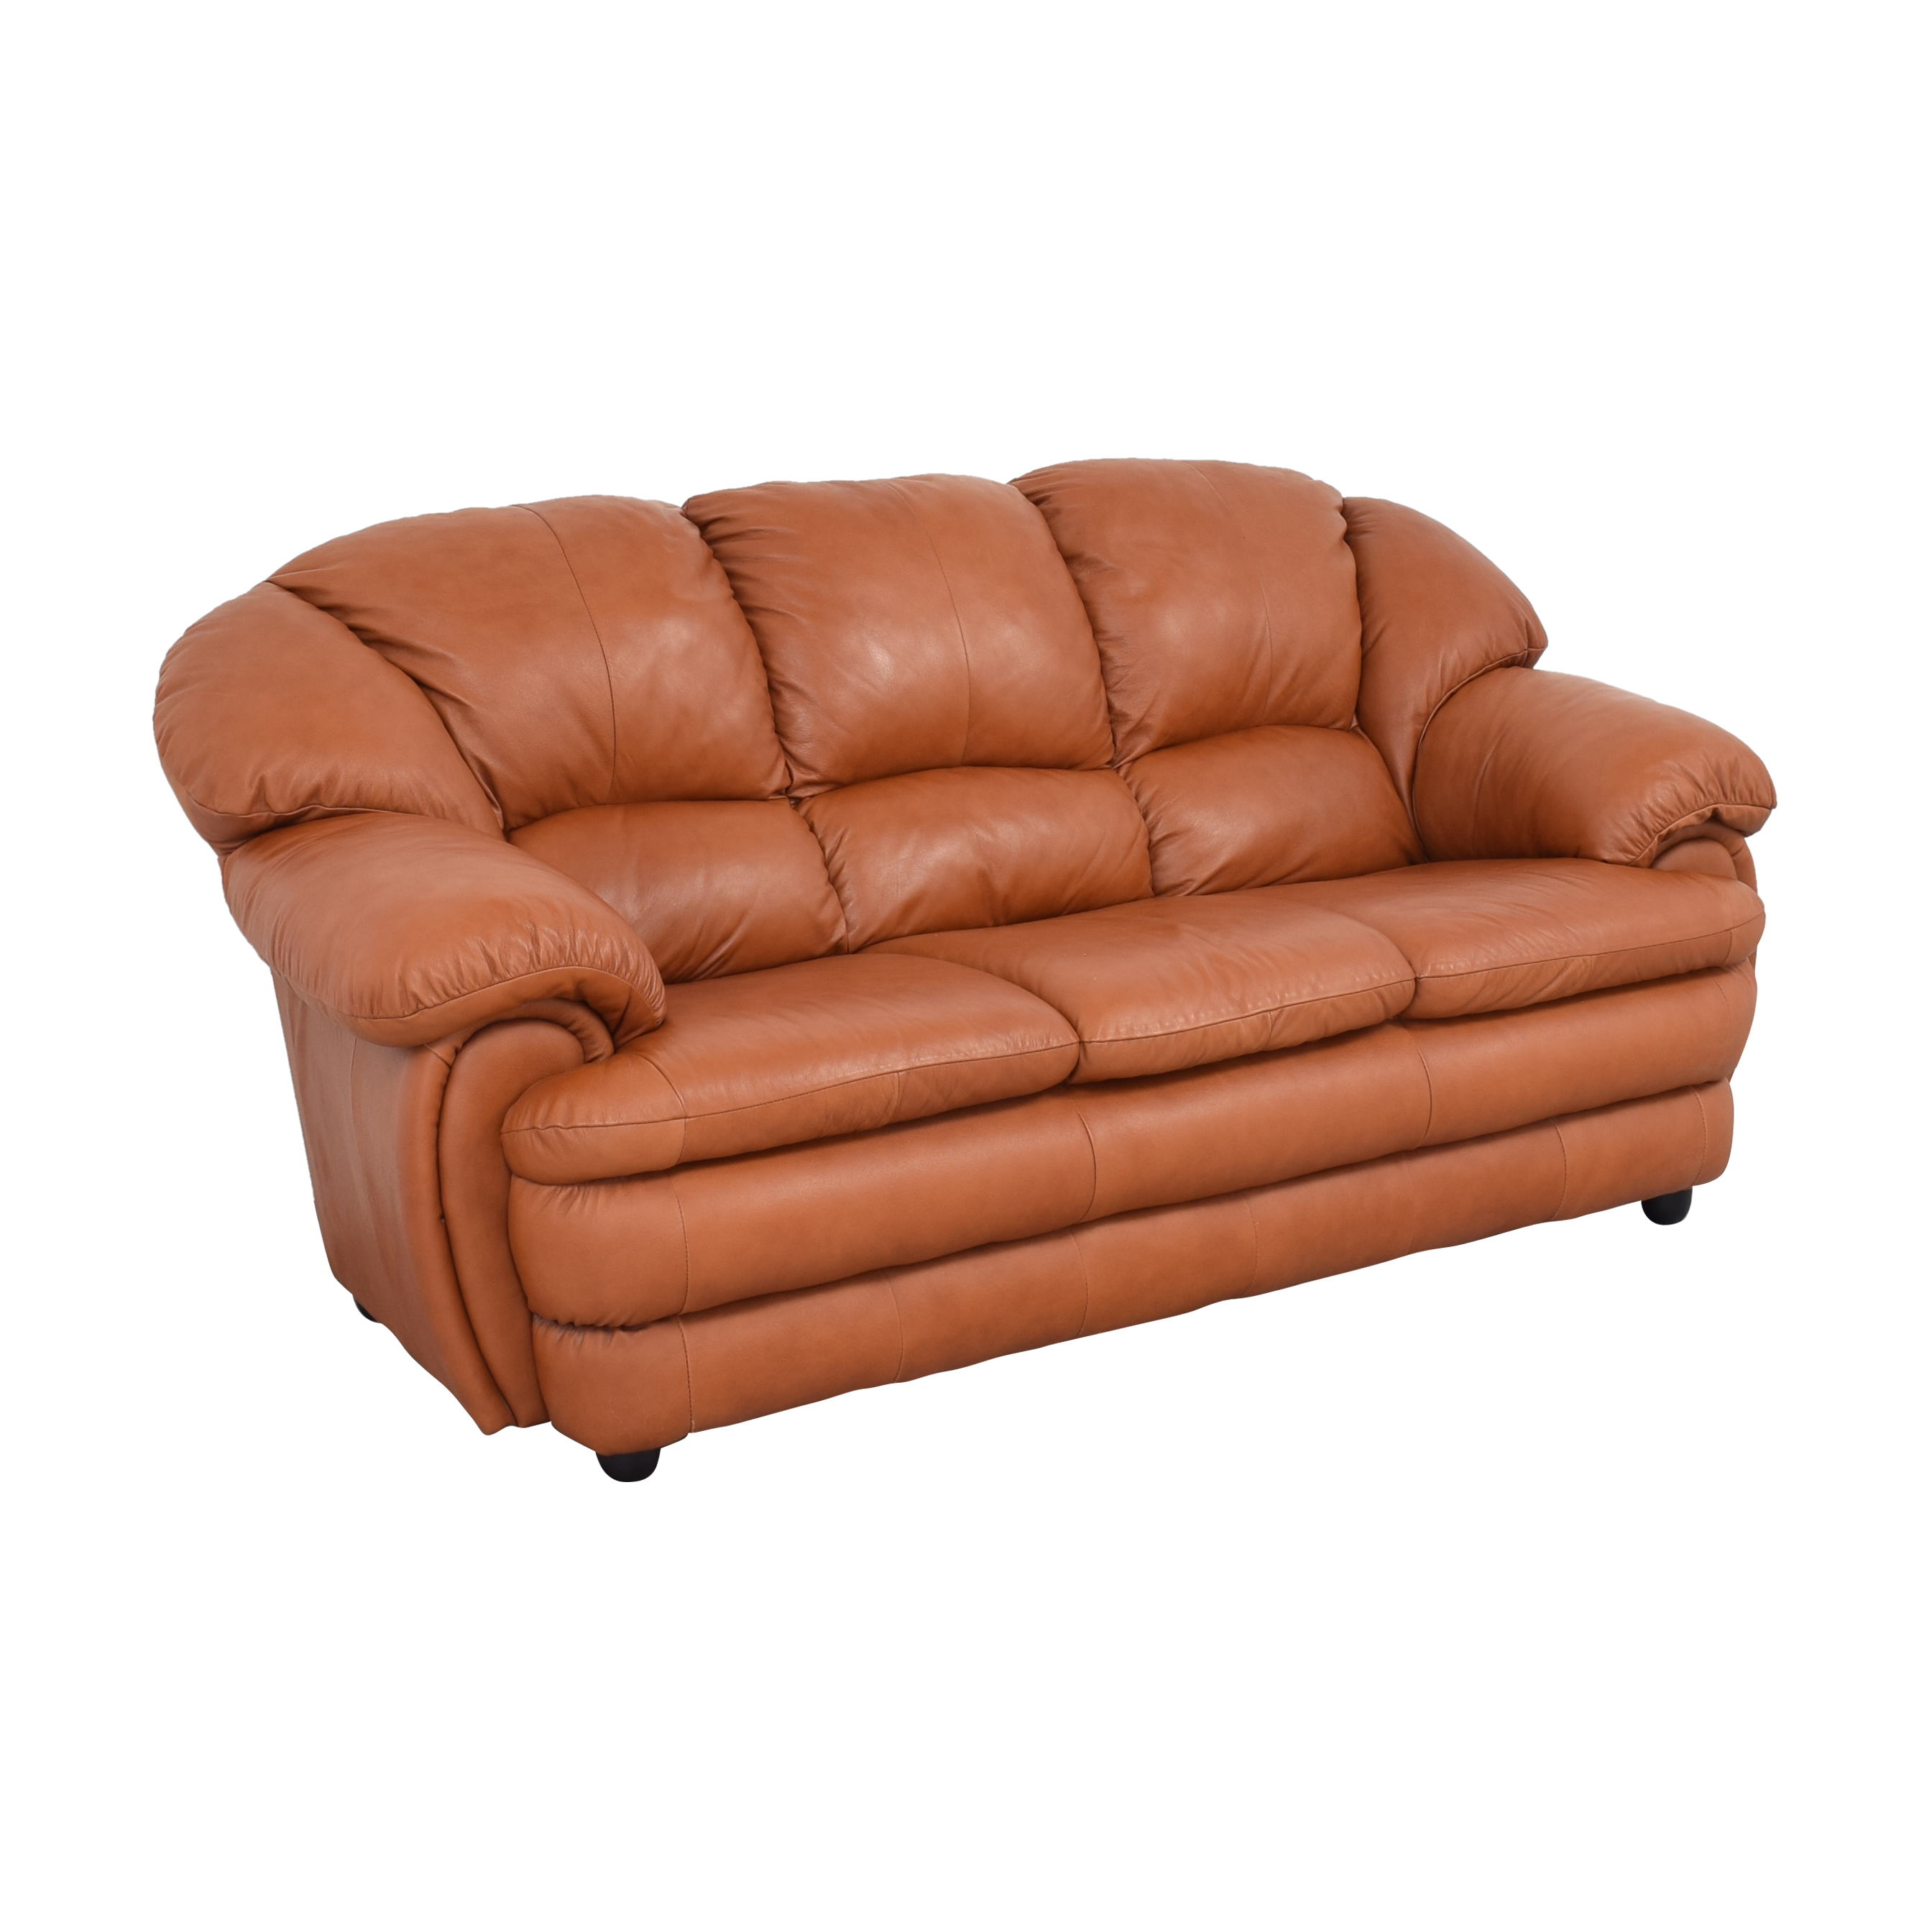 Natale Furniture Natale Three Cushion Sofa dimensions